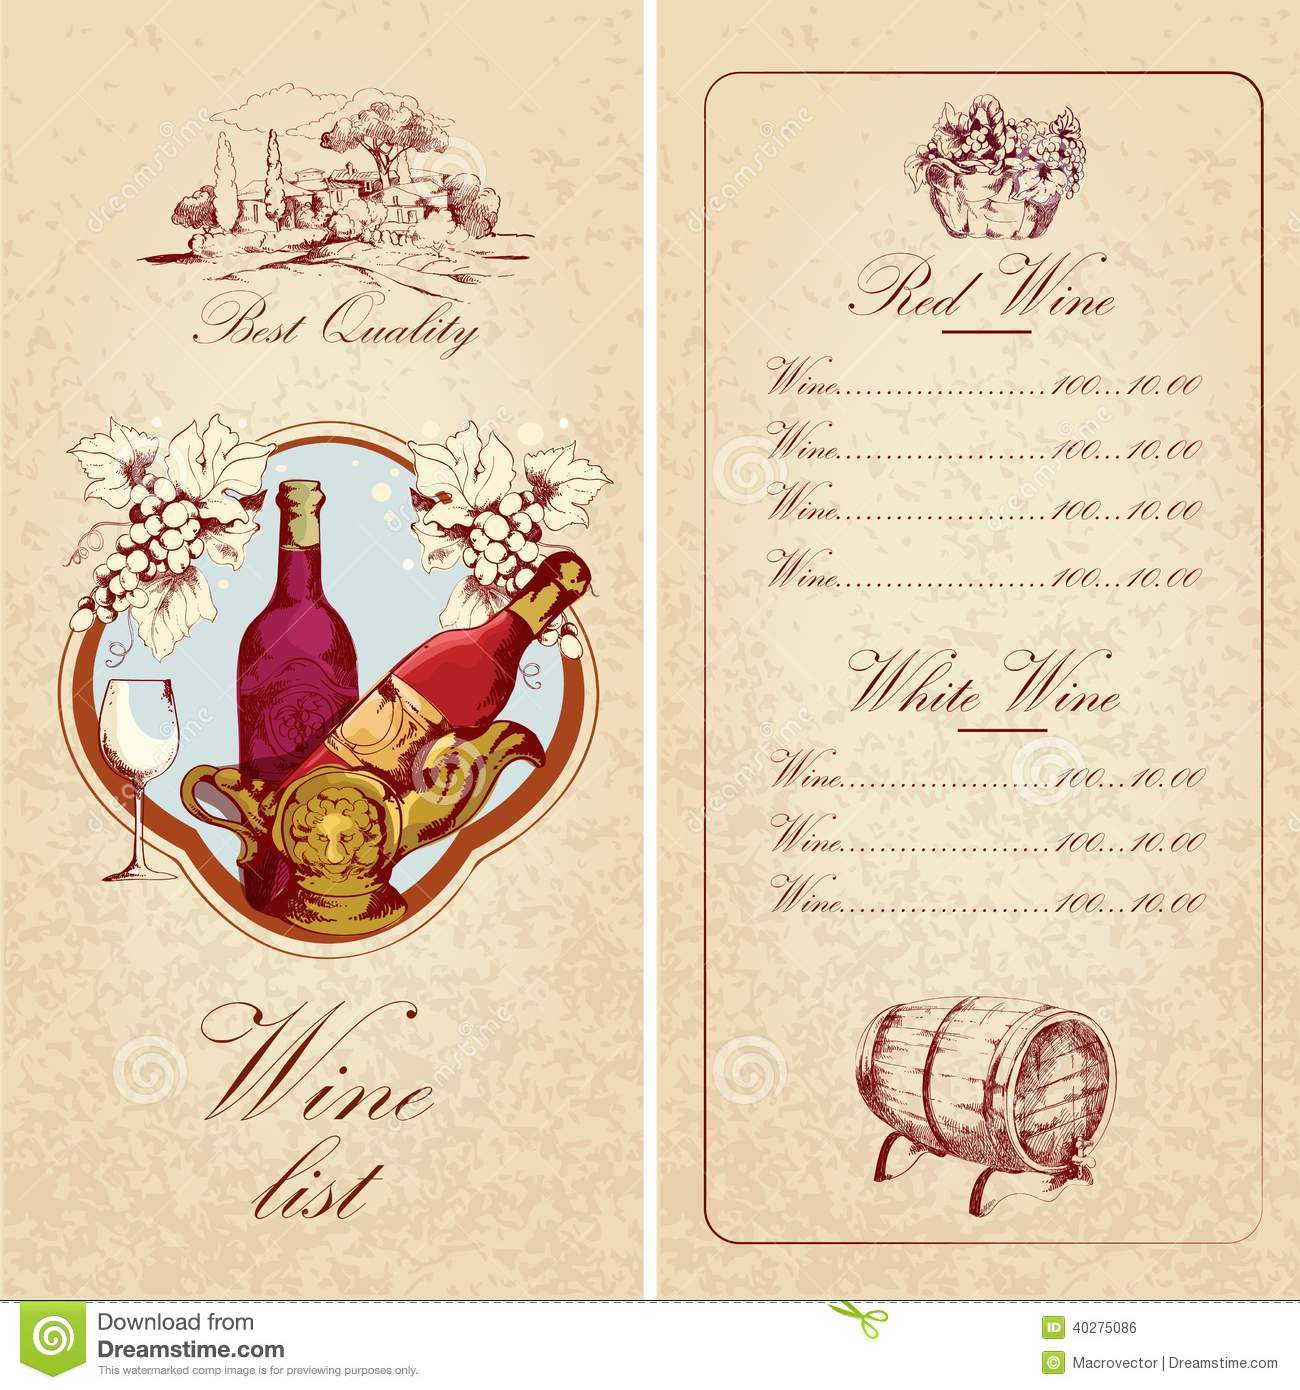 Awesome Wine List Template Ideas Free Wine List Template